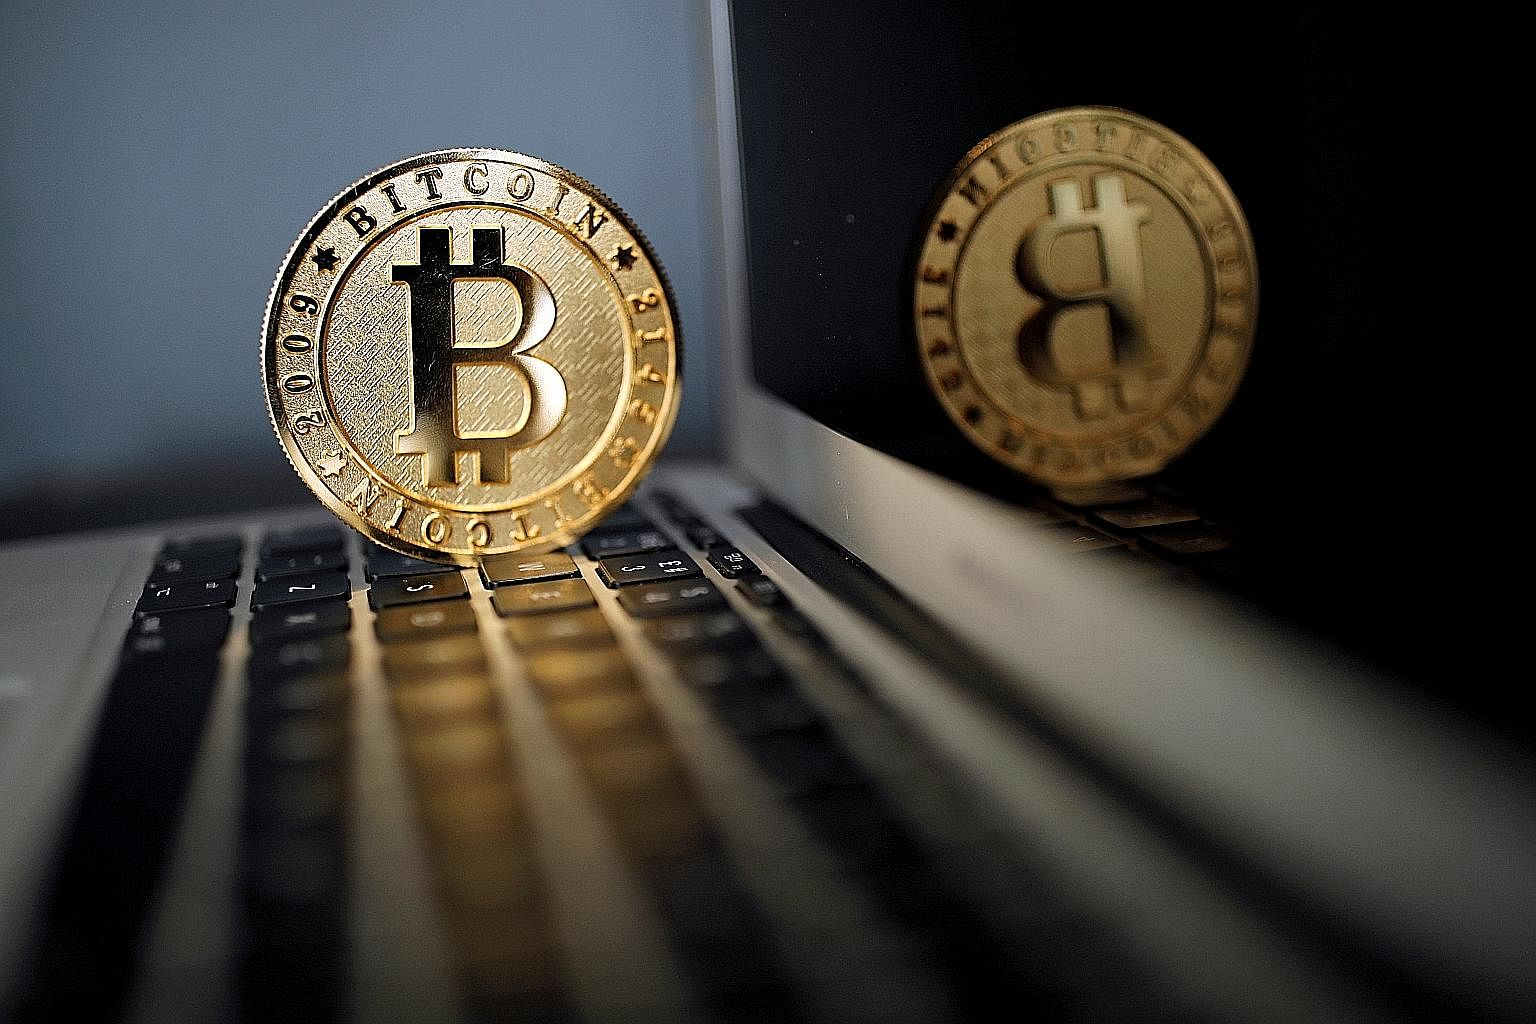 Bitcoin's price will be subjected to wild swings as its supply would be uncertain and its natural demand limited. But the underlying blockchain technology could revolutionise industries.